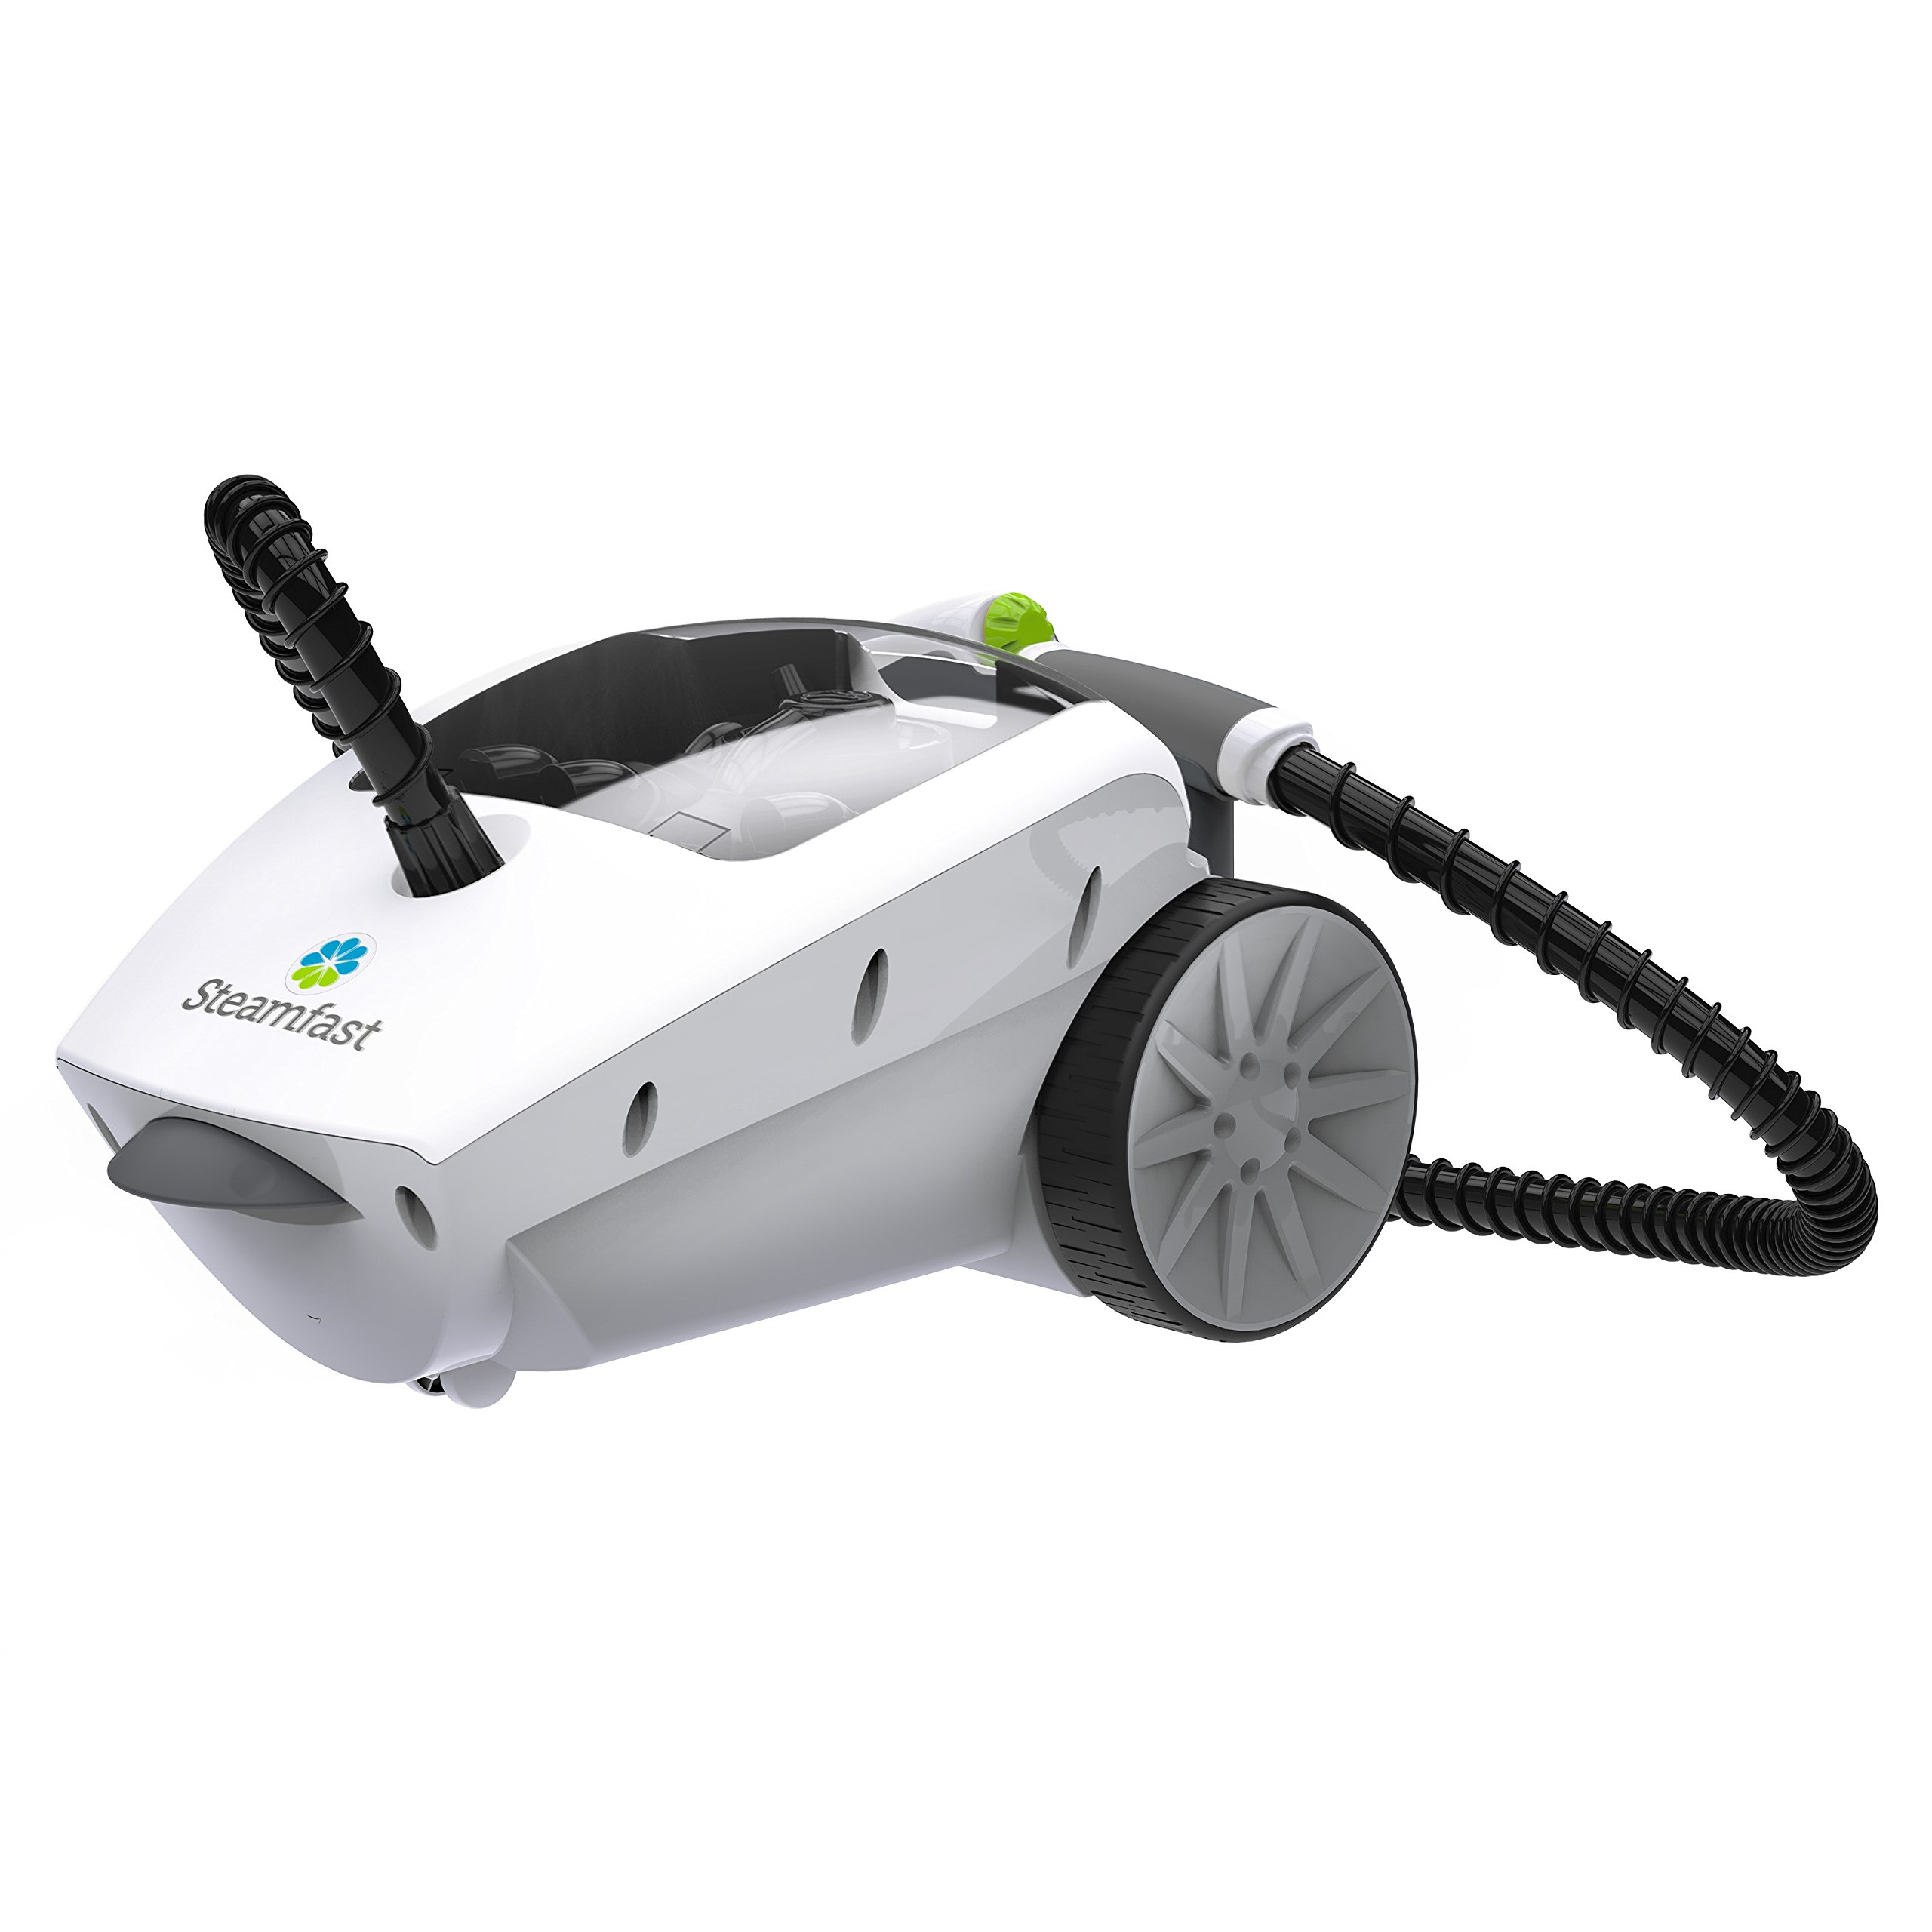 Steamfast SF-375 Deluxe Canister Cleaner with 18 Accessories, Continuous Steam Trigger, and Onboard Storage